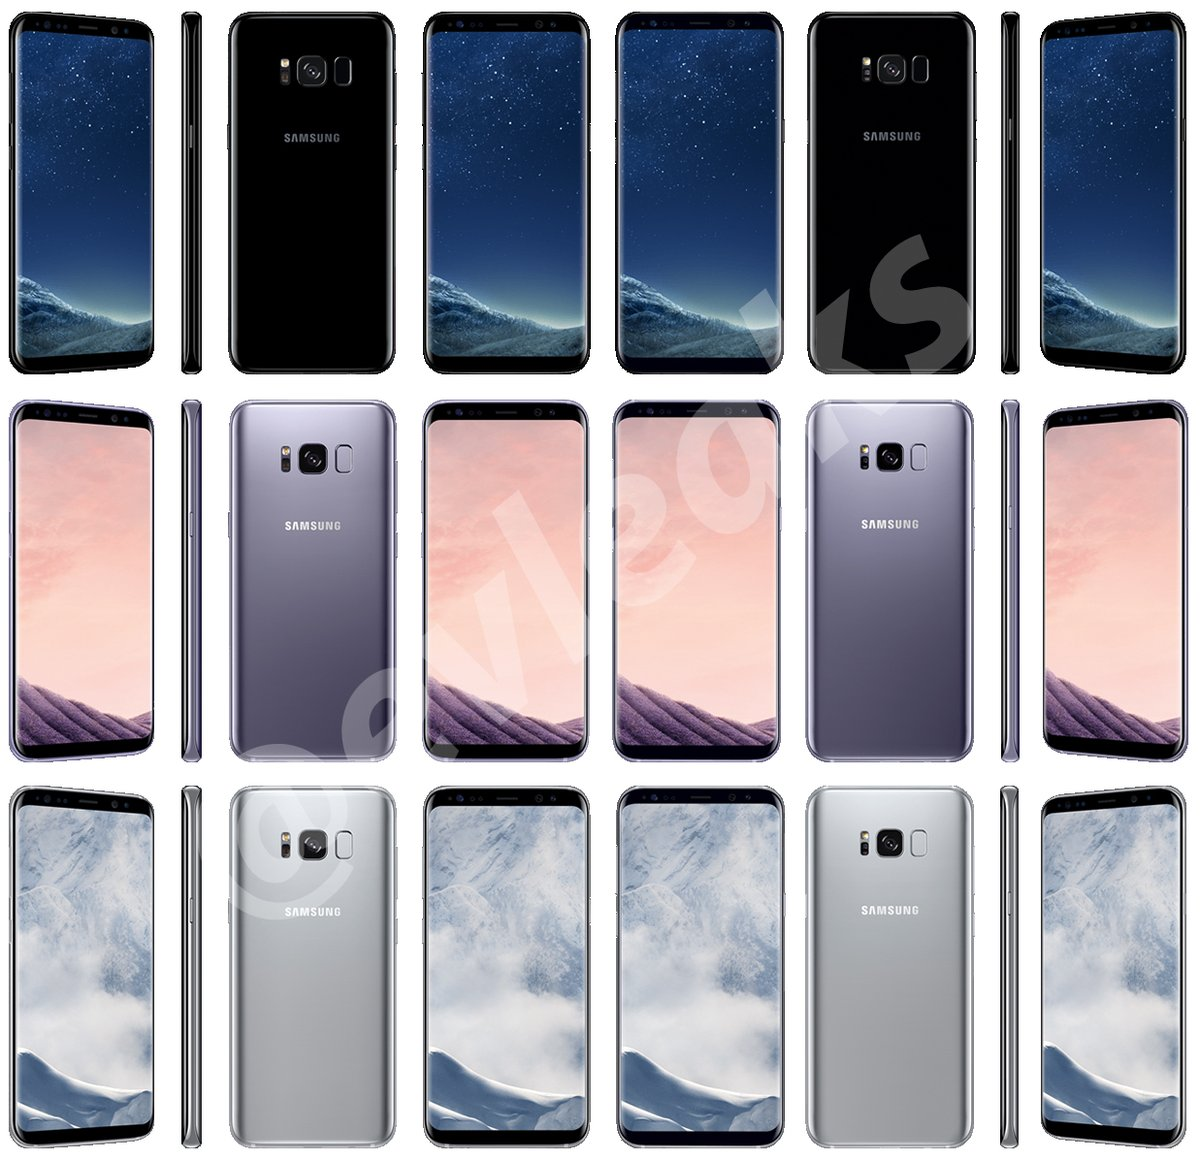 Galaxy S8 all colors evleaks